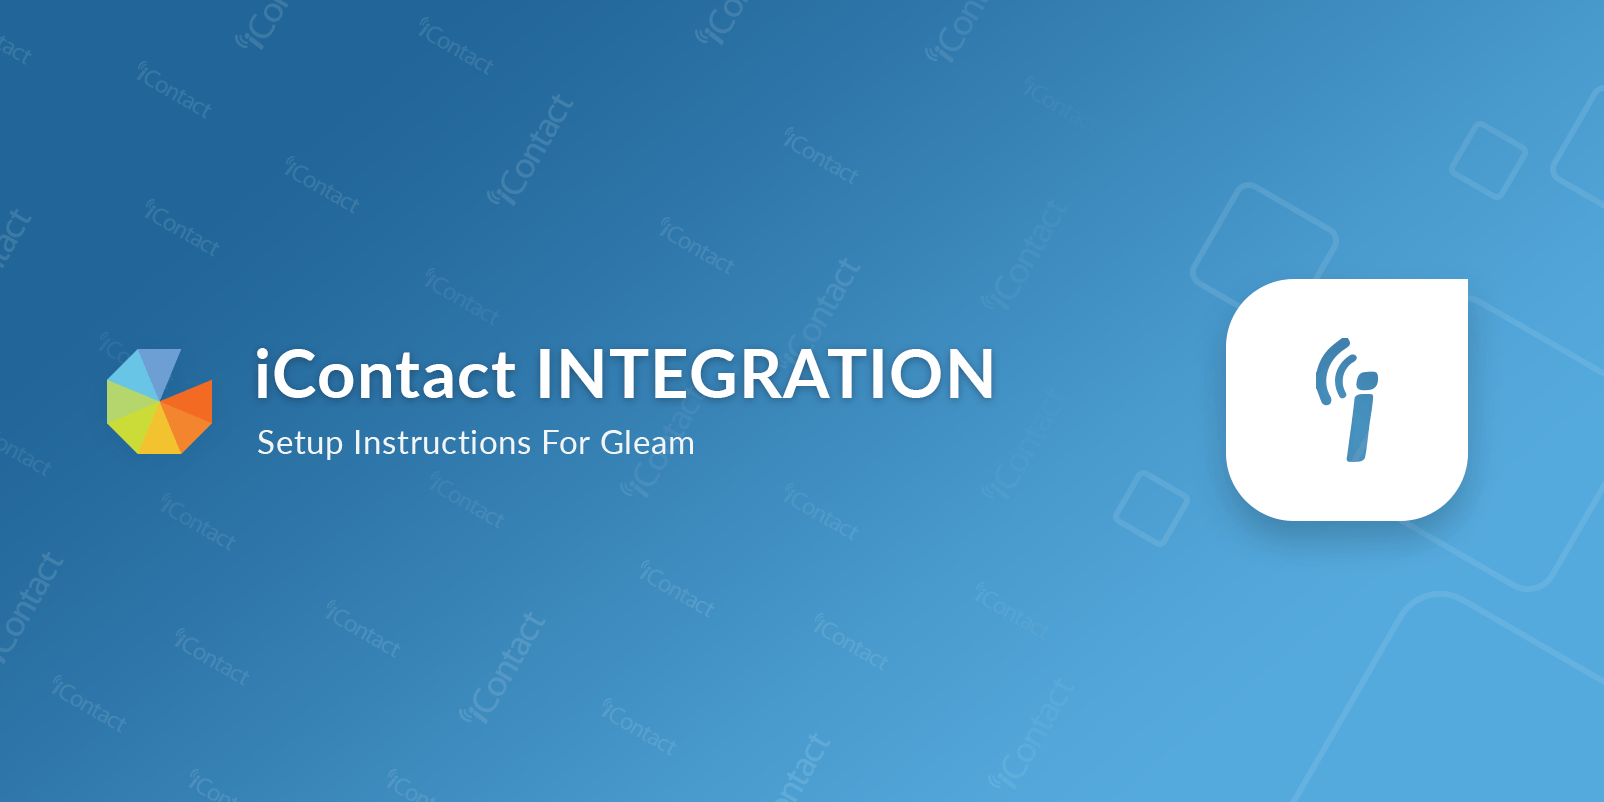 Gleam iContact Integration